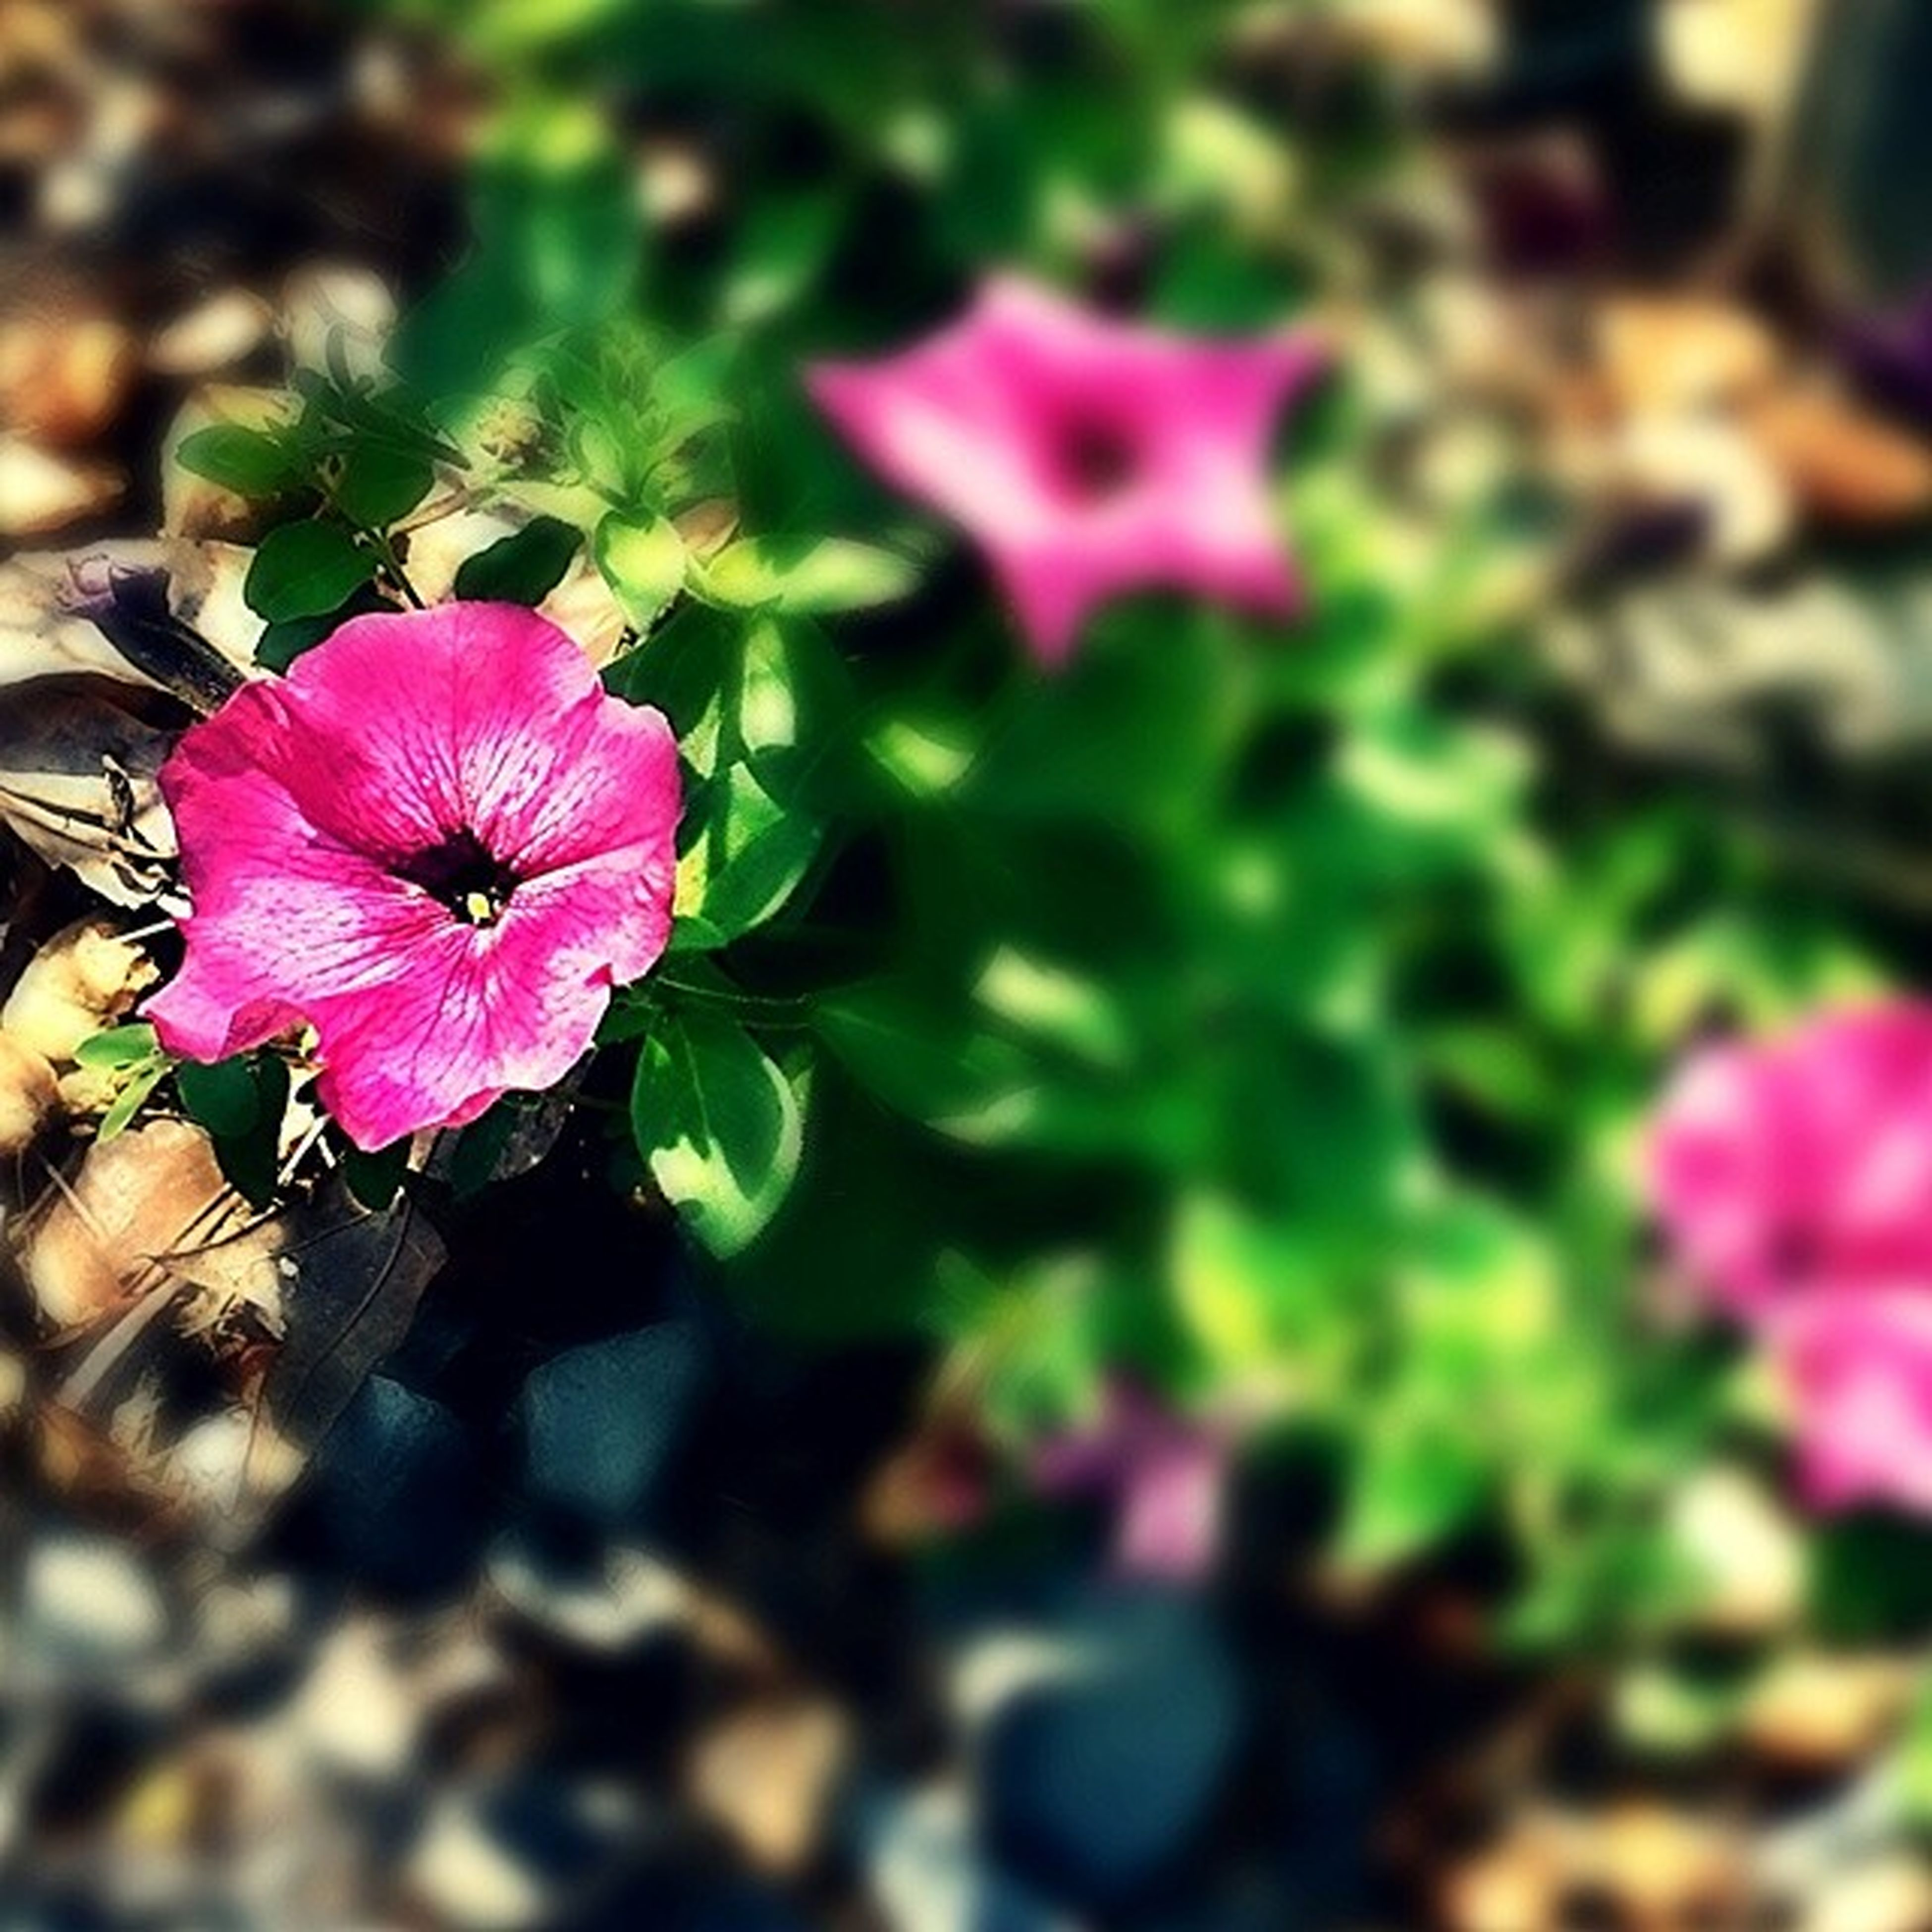 flower, freshness, petal, fragility, growth, flower head, beauty in nature, plant, pink color, blooming, close-up, nature, focus on foreground, leaf, purple, in bloom, selective focus, high angle view, outdoors, day